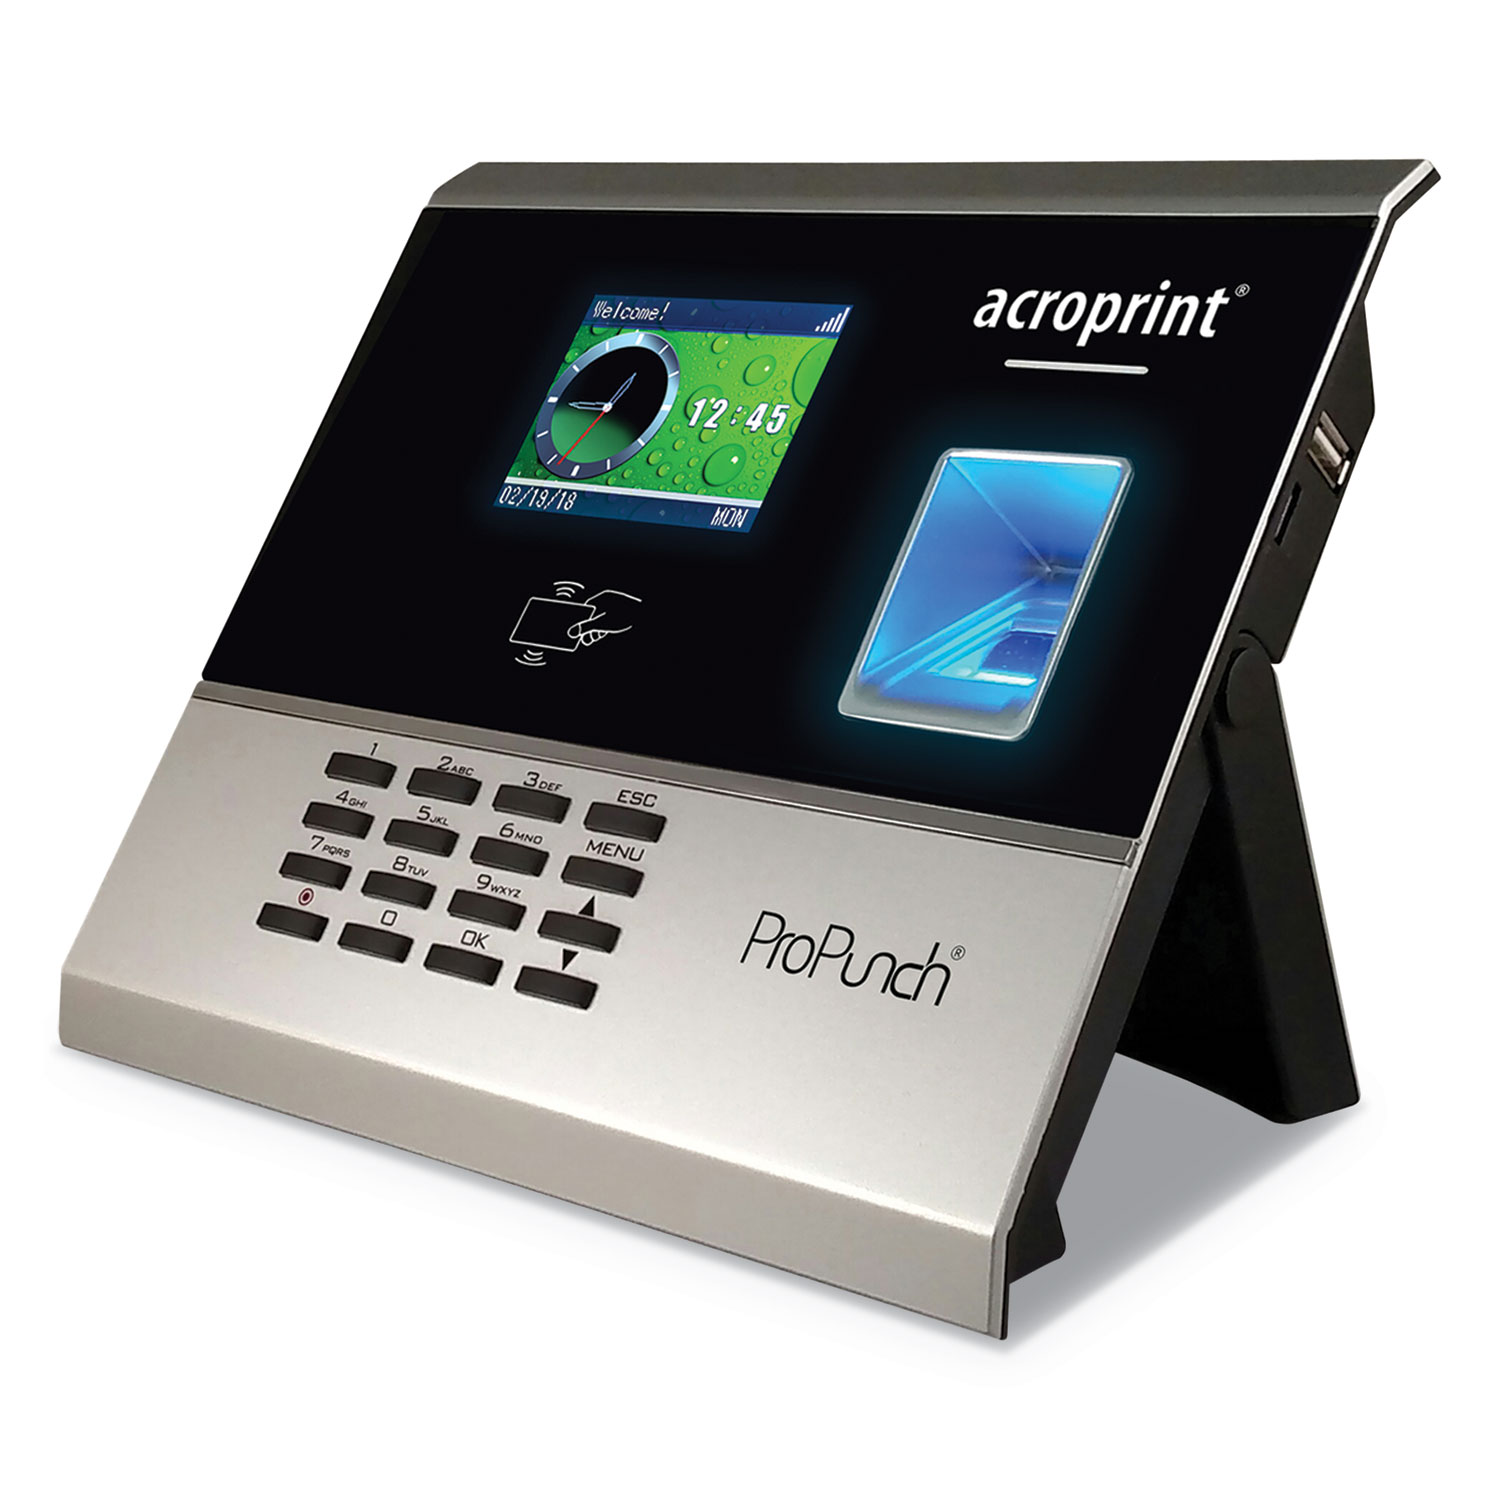 ProPunch Biometric Add-On Terminal, Automatic, 3000 Employees, Black